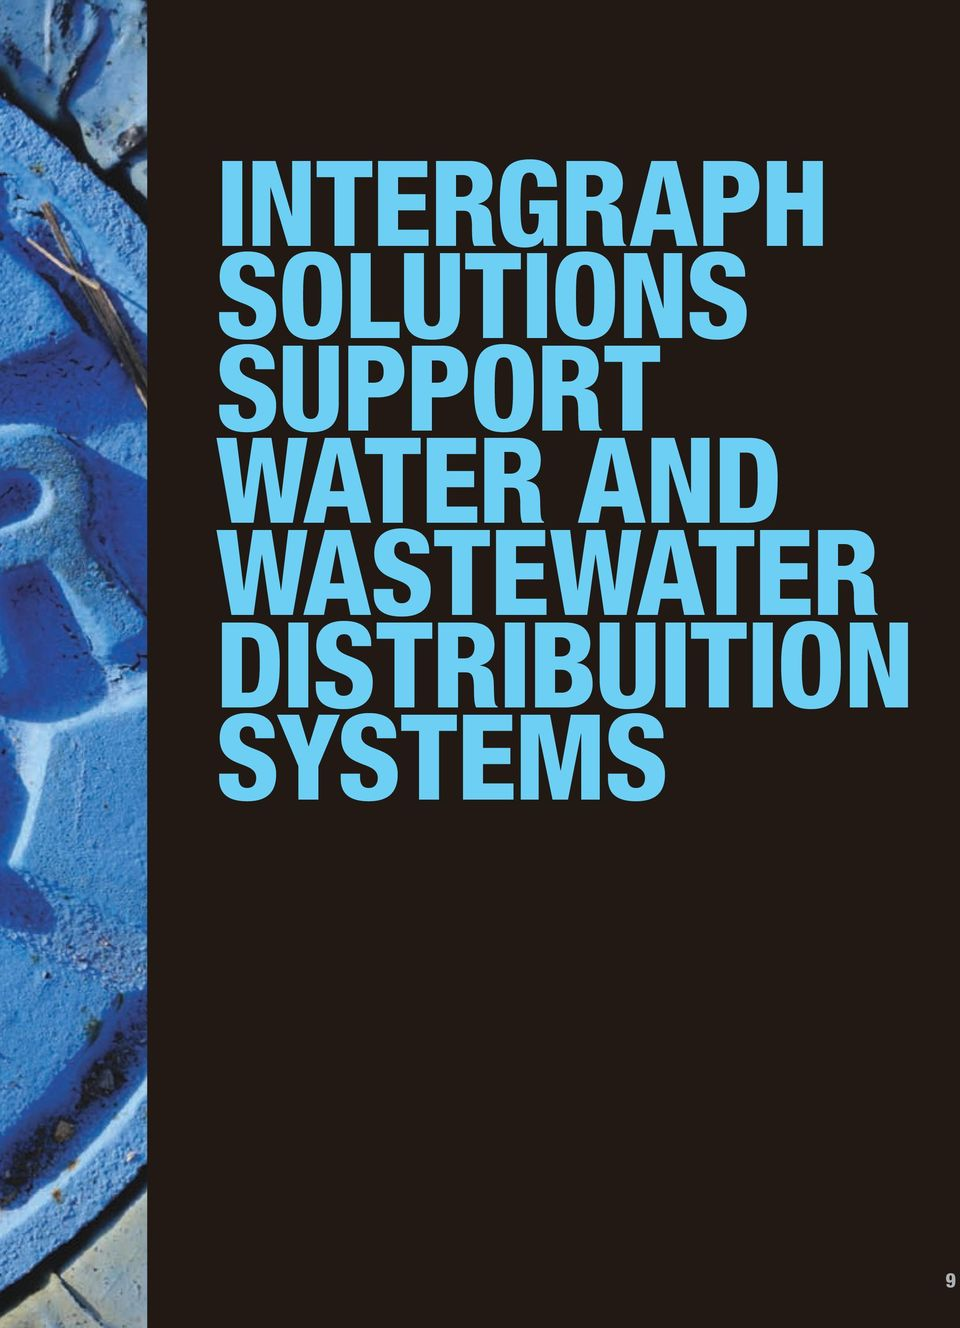 SUPPORT 2 WATER AND